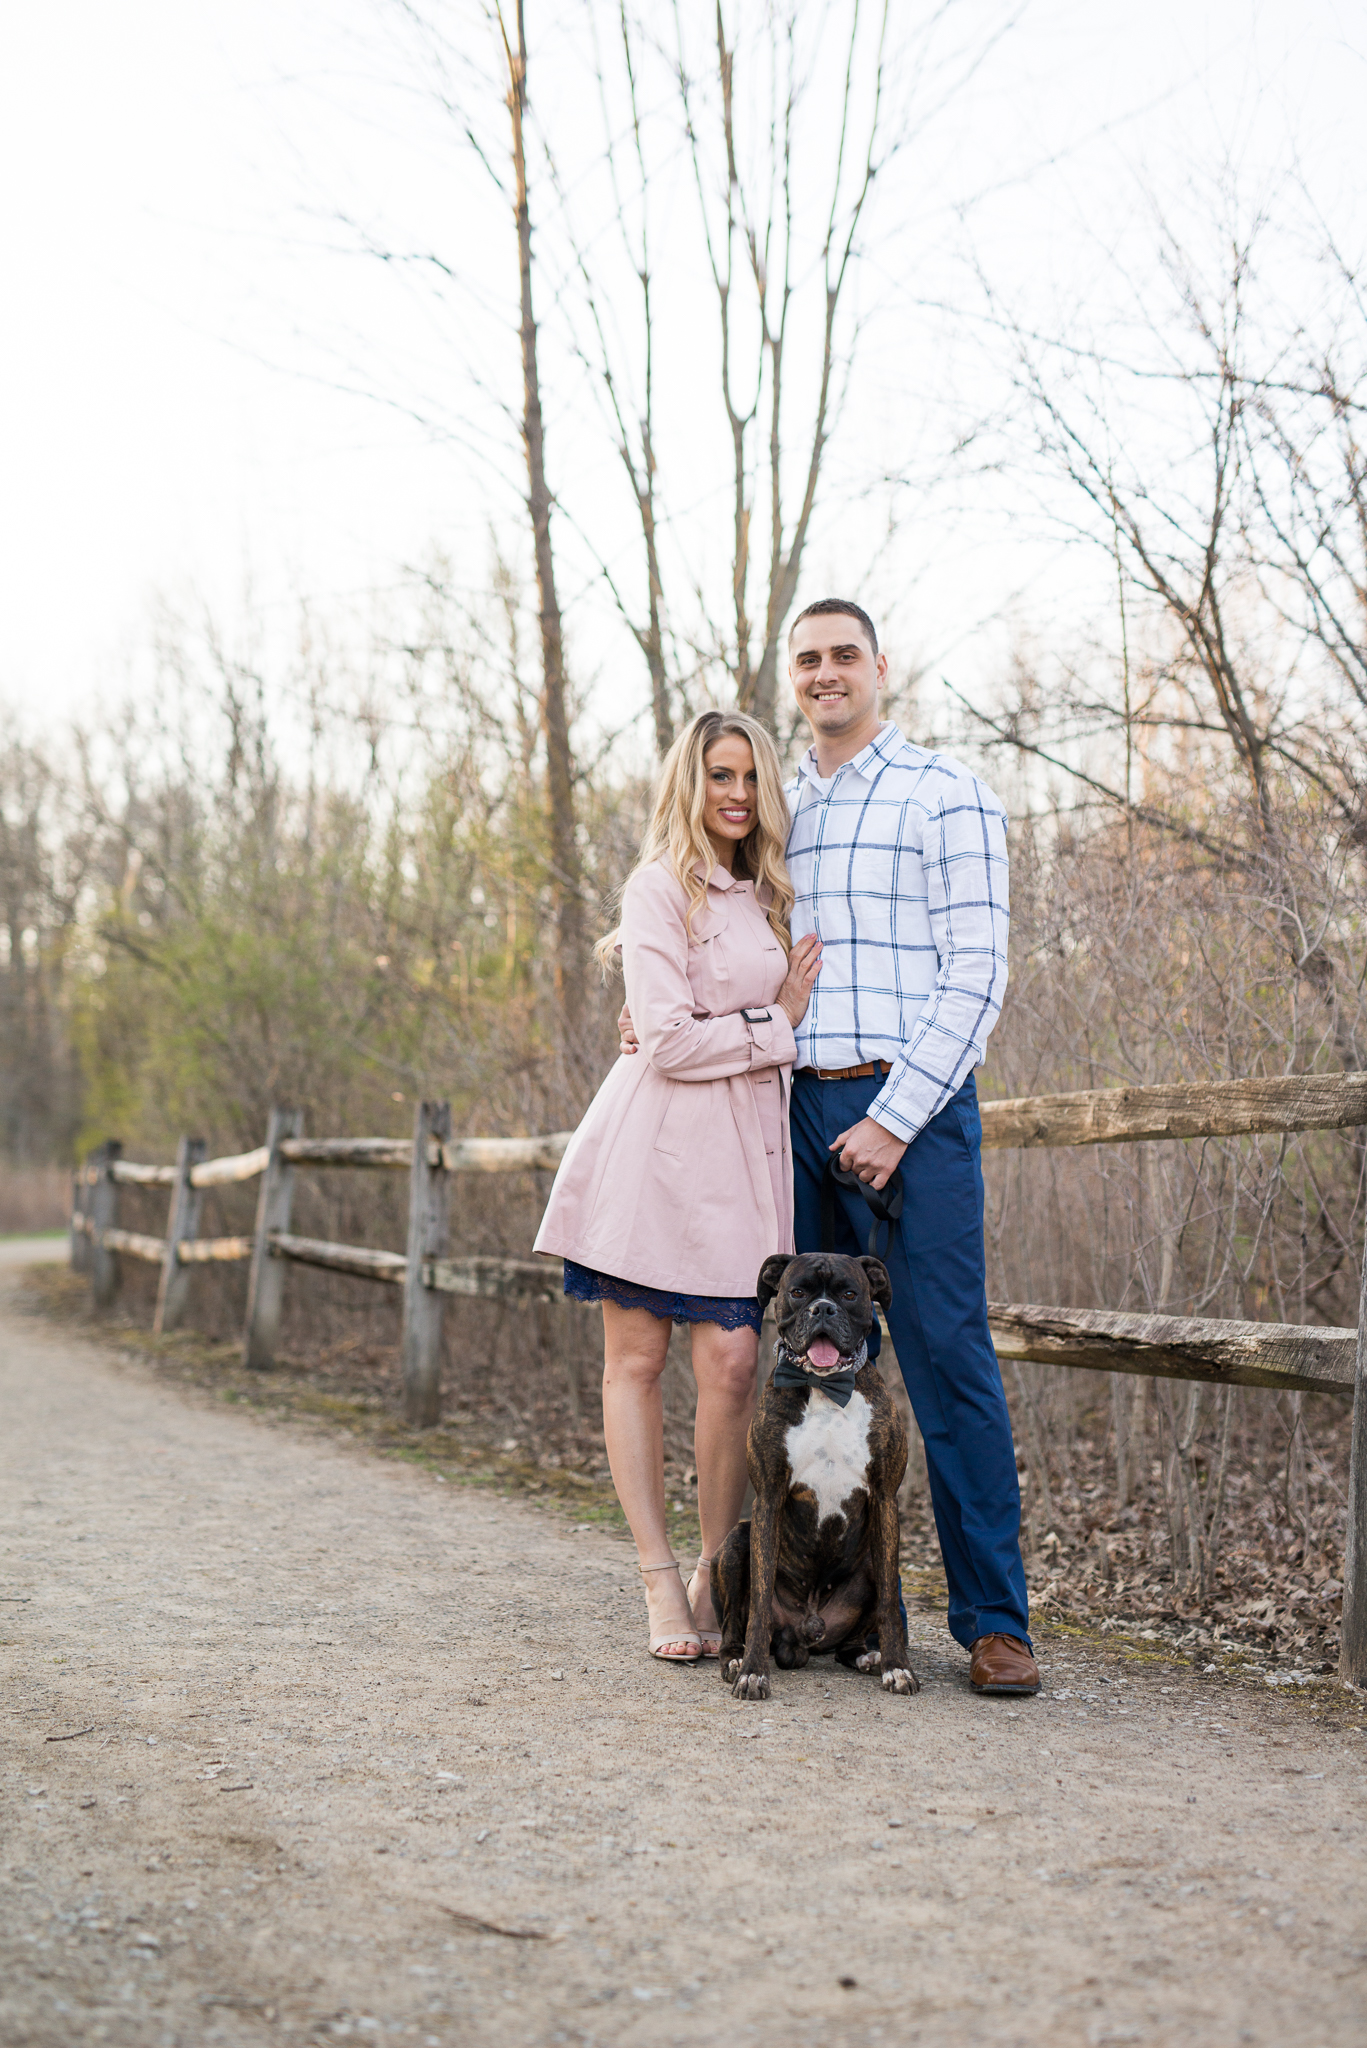 Lauren and Ty did an awesome job looking at the camera and we called Bo so that we could get the shot!